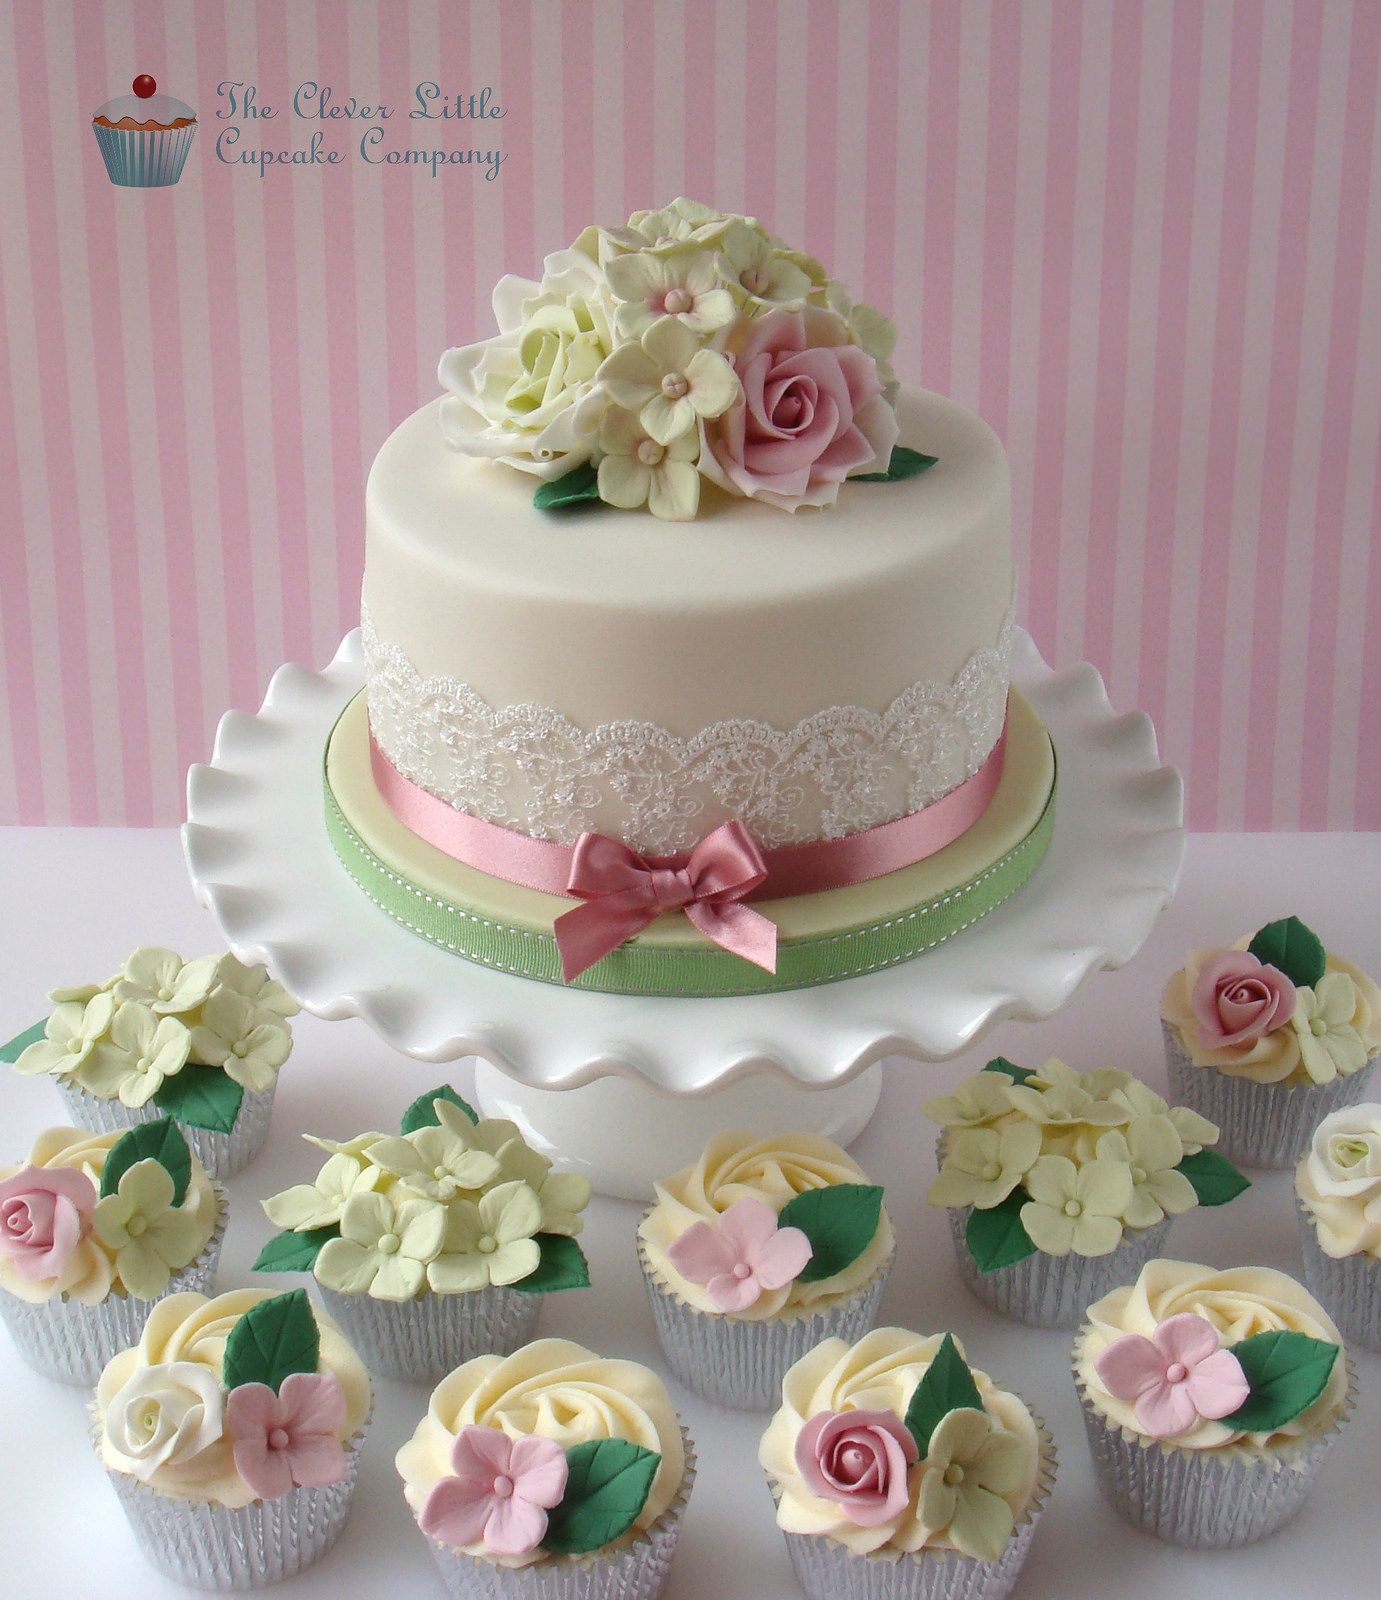 rose and hydrangea 90th birthday cake in 2019 cake decorating g teau anniversaire femme